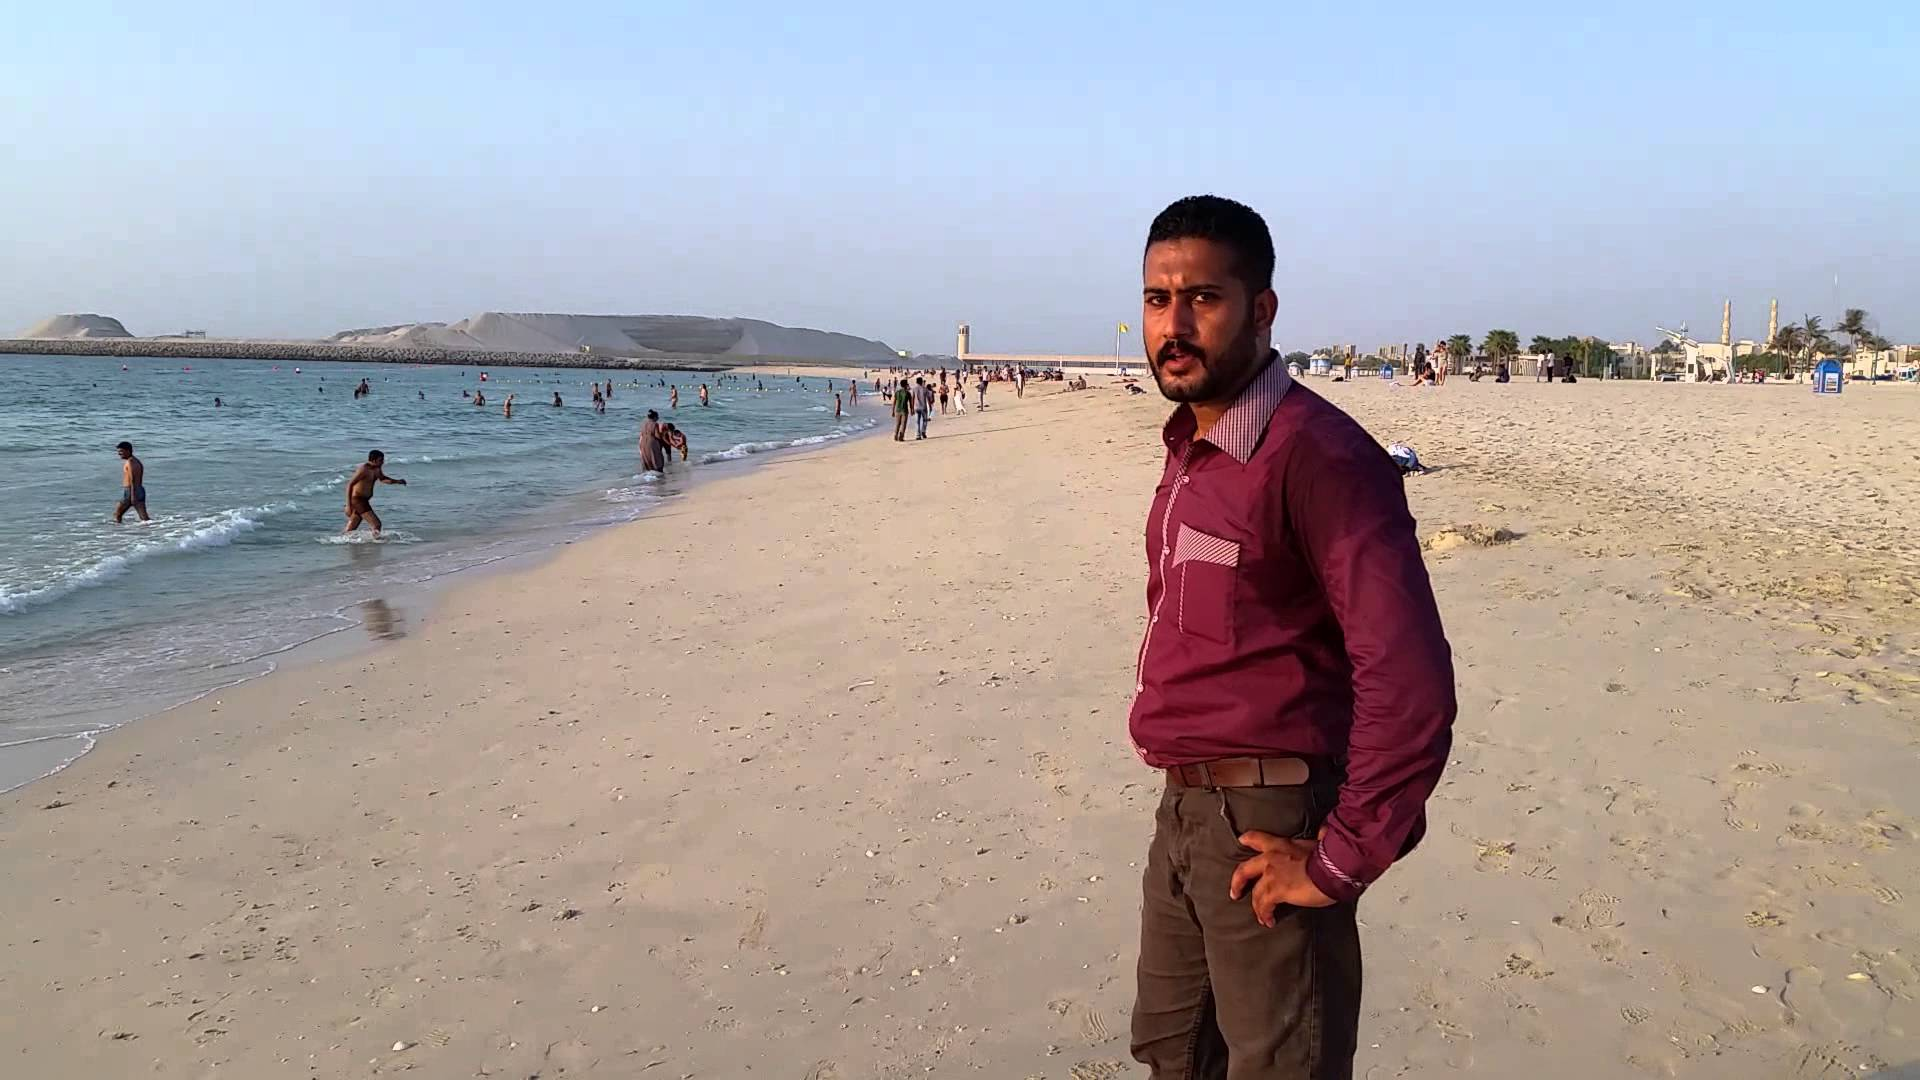 Jumeirah Open Beach Dubai, Jumeirah Public Beach, Dubai Asif Ahmed - YouTube